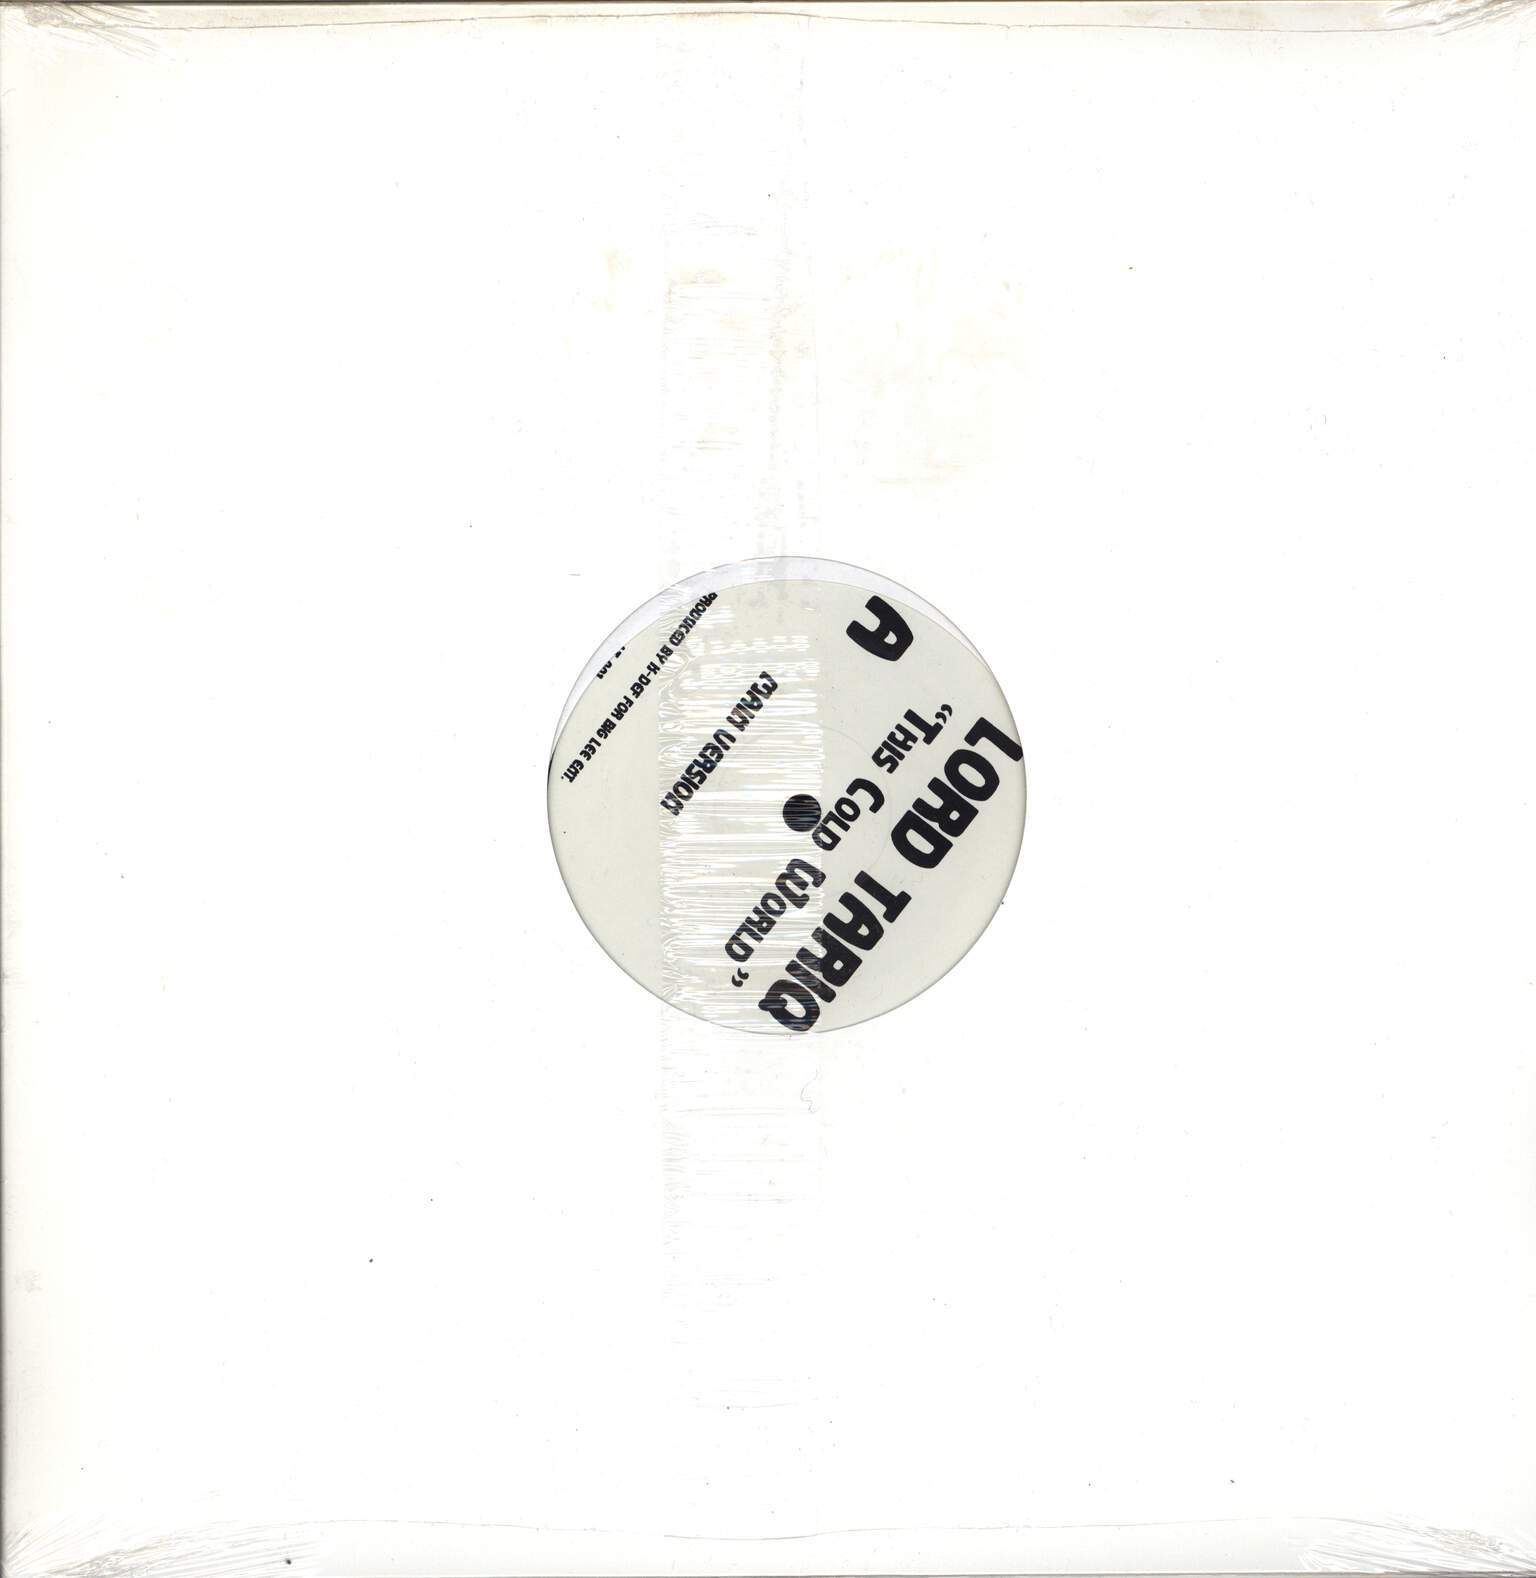 "Lord Tariq: This Cold World, 12"" Maxi Single (Vinyl)"